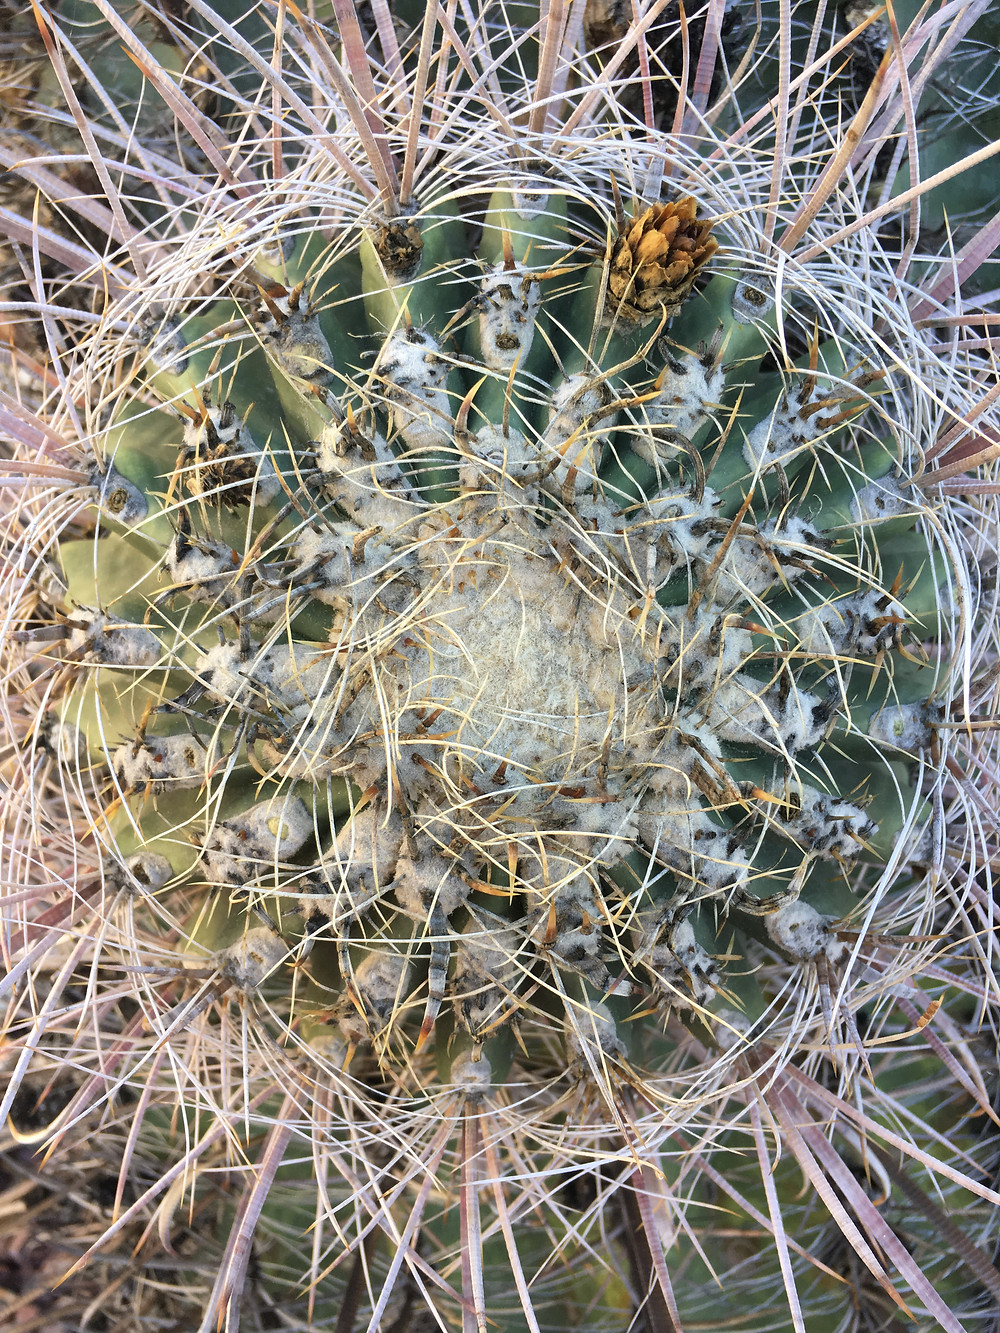 Fishhook barrel cactus from the top